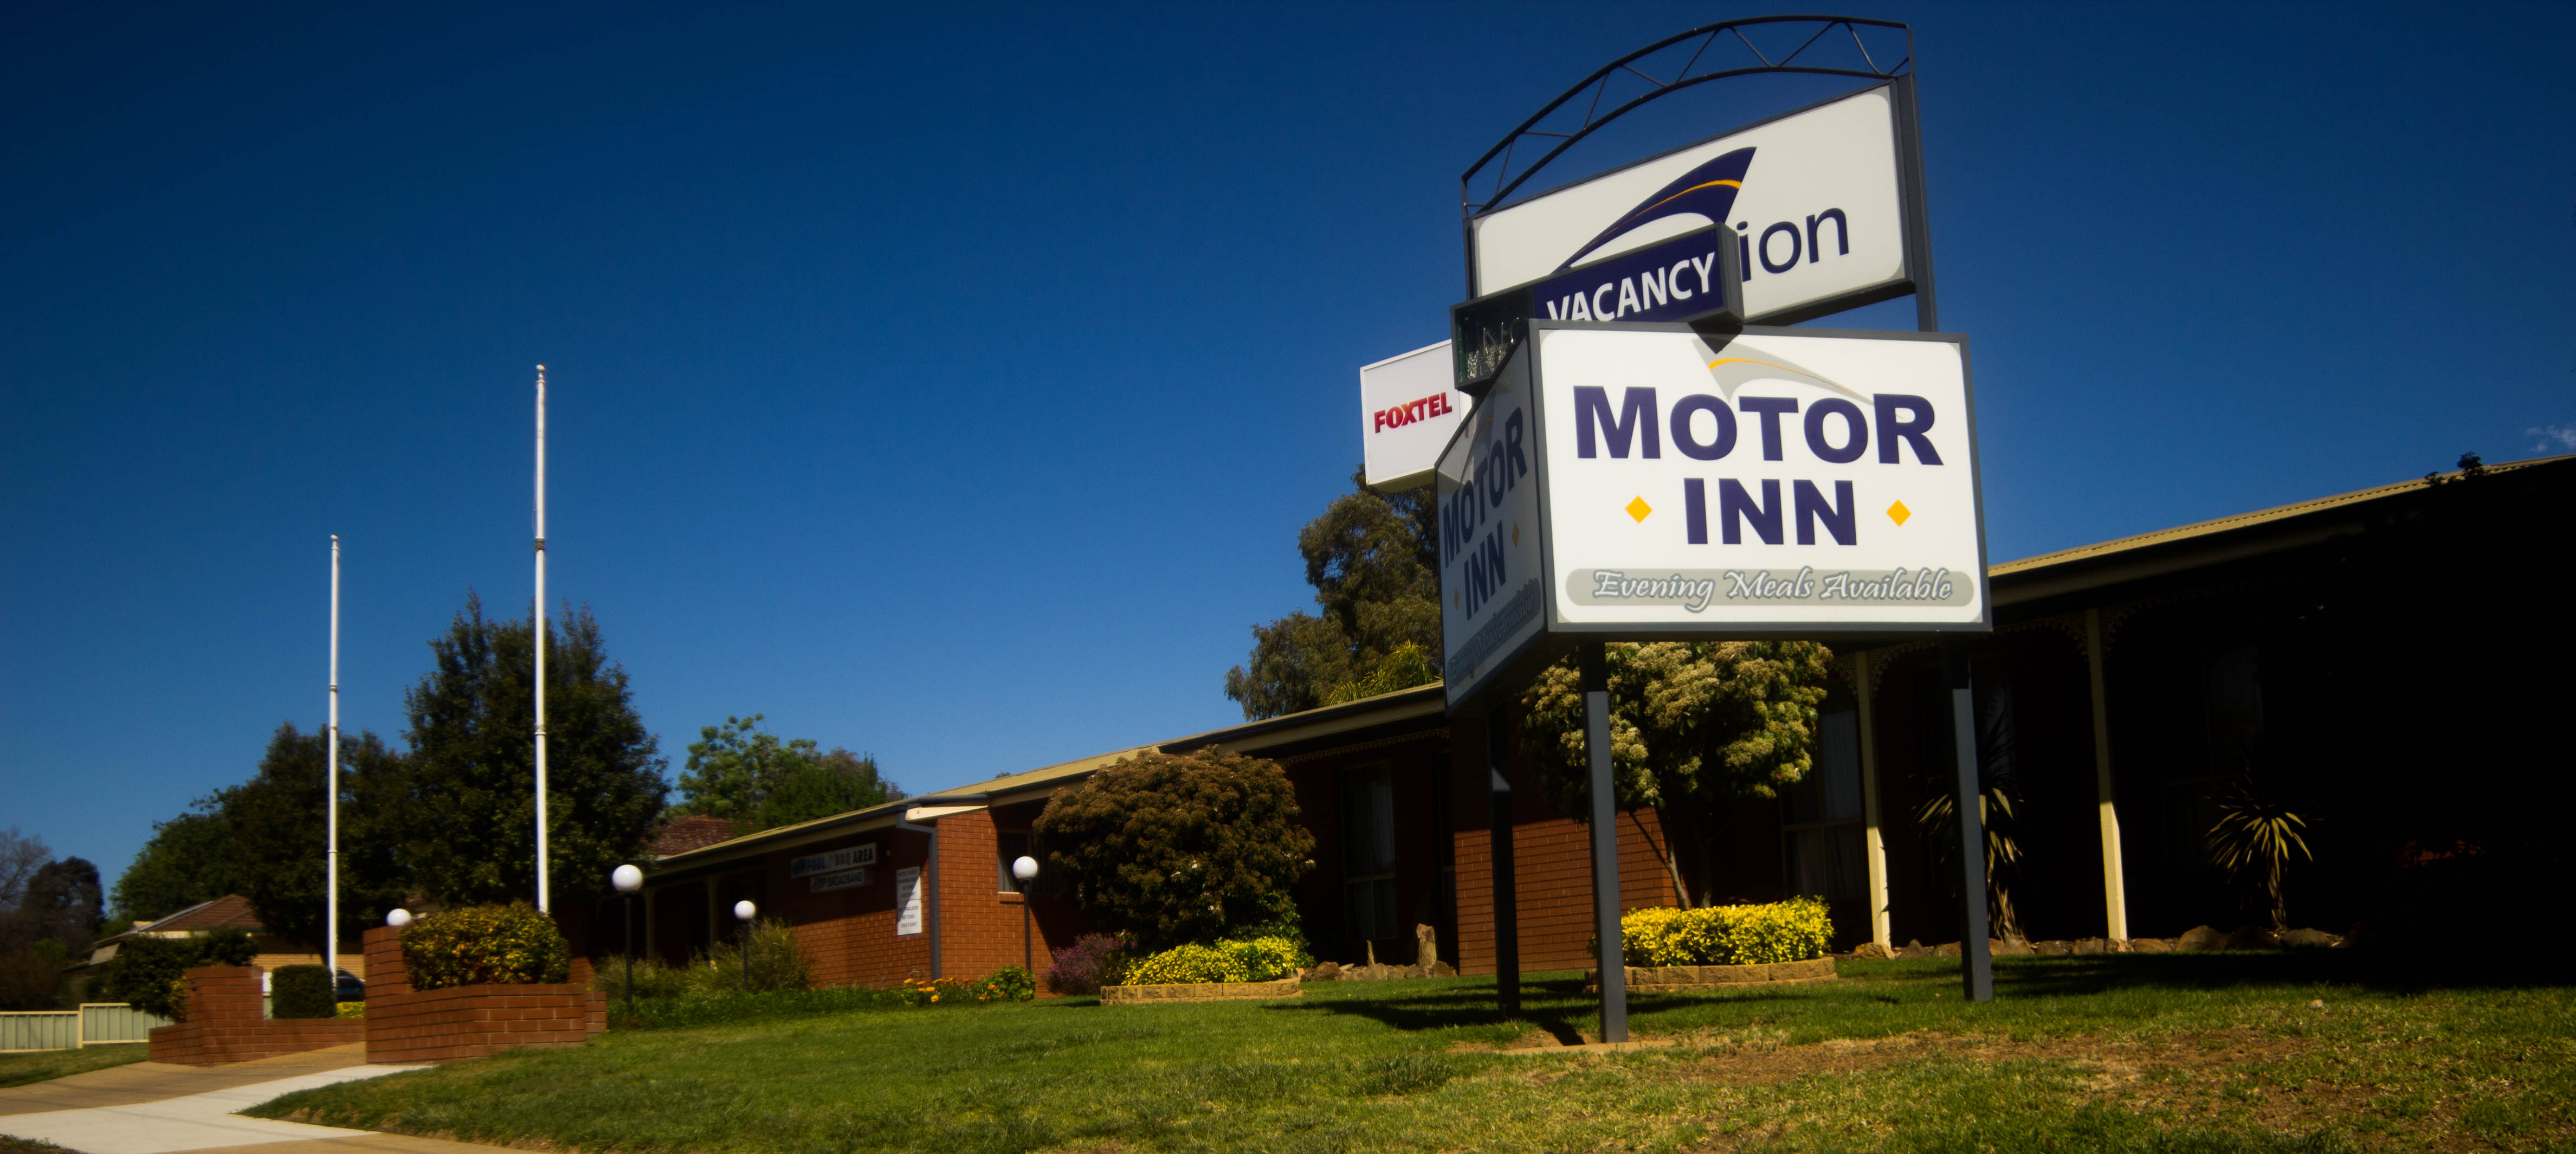 Junction Motor Inn - VIC Tourism